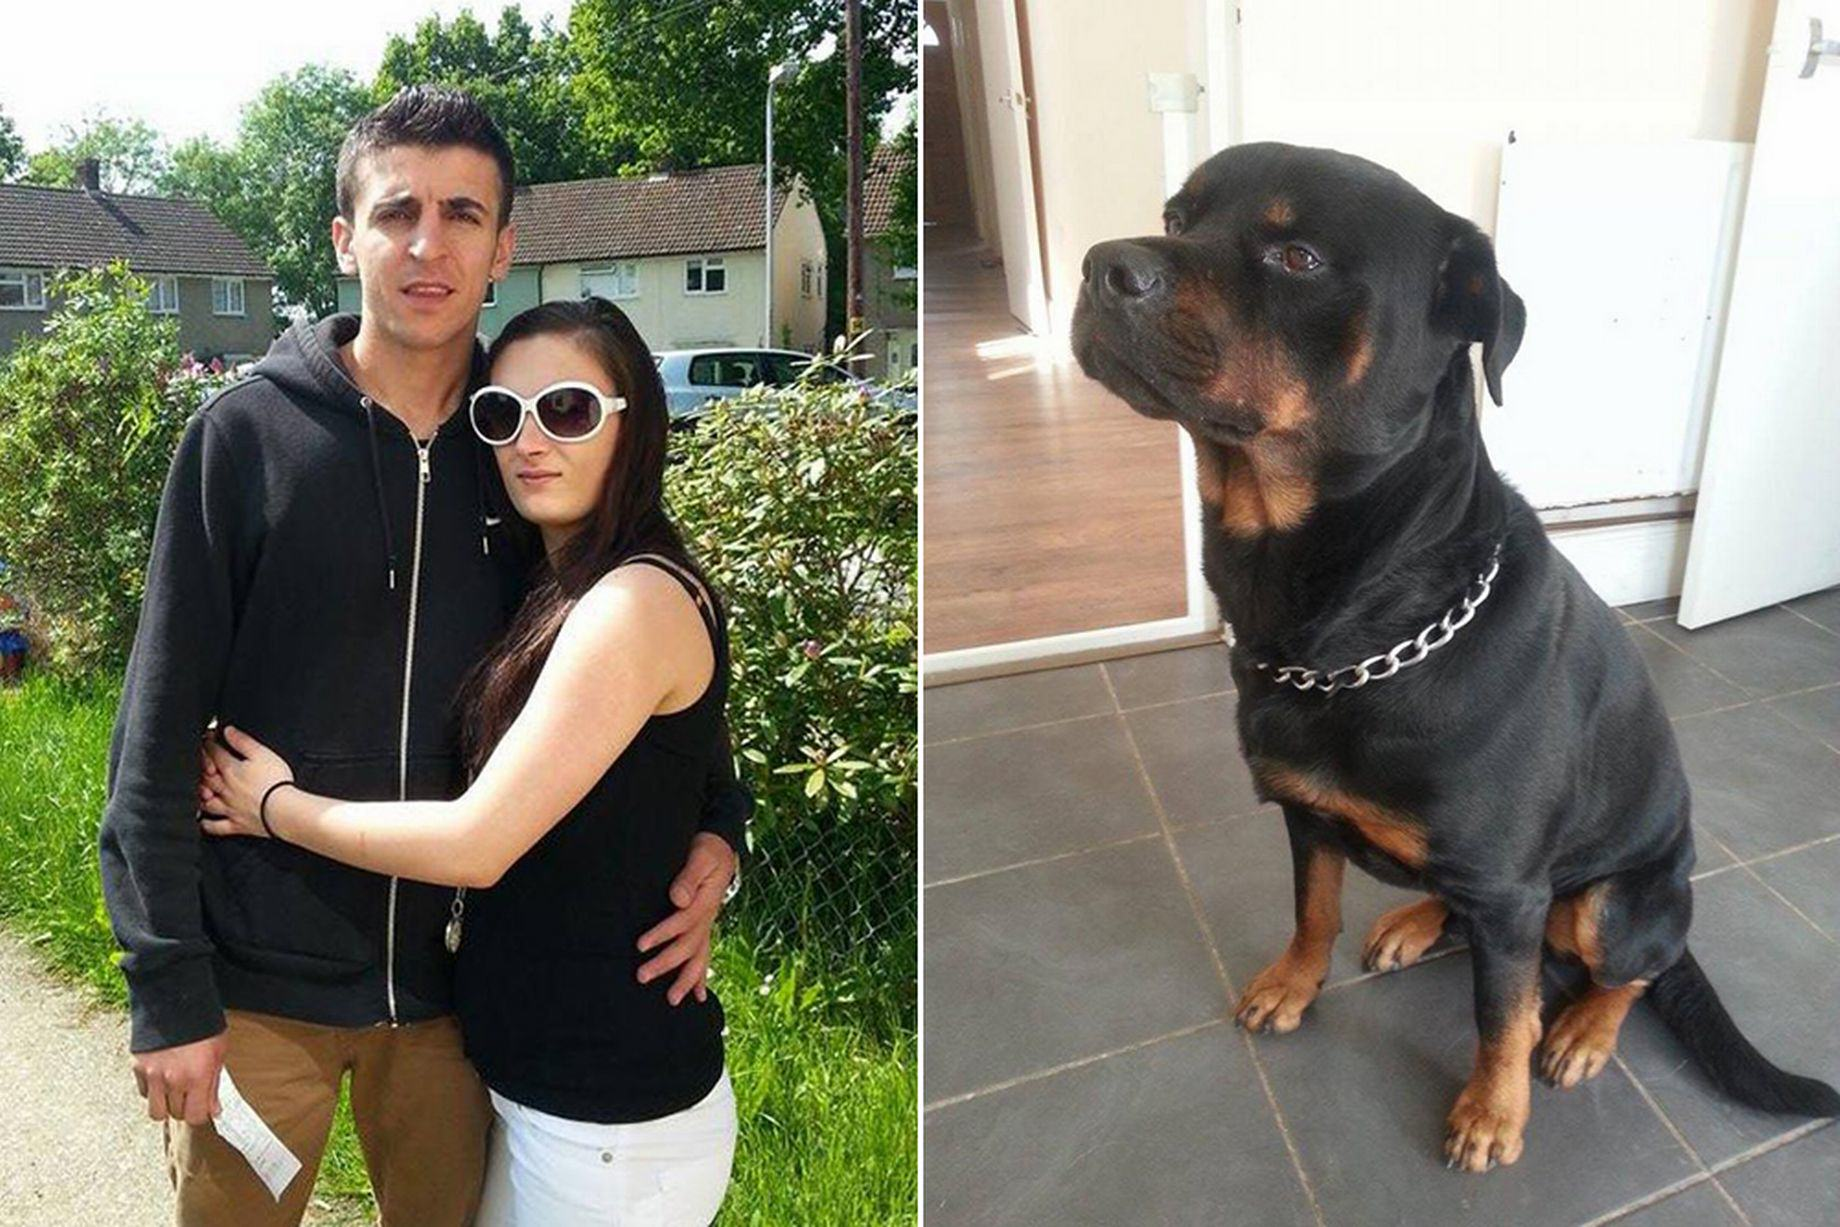 Hero Dog Saves Pregnant Woman From Knifepoint Attack By Gang hero